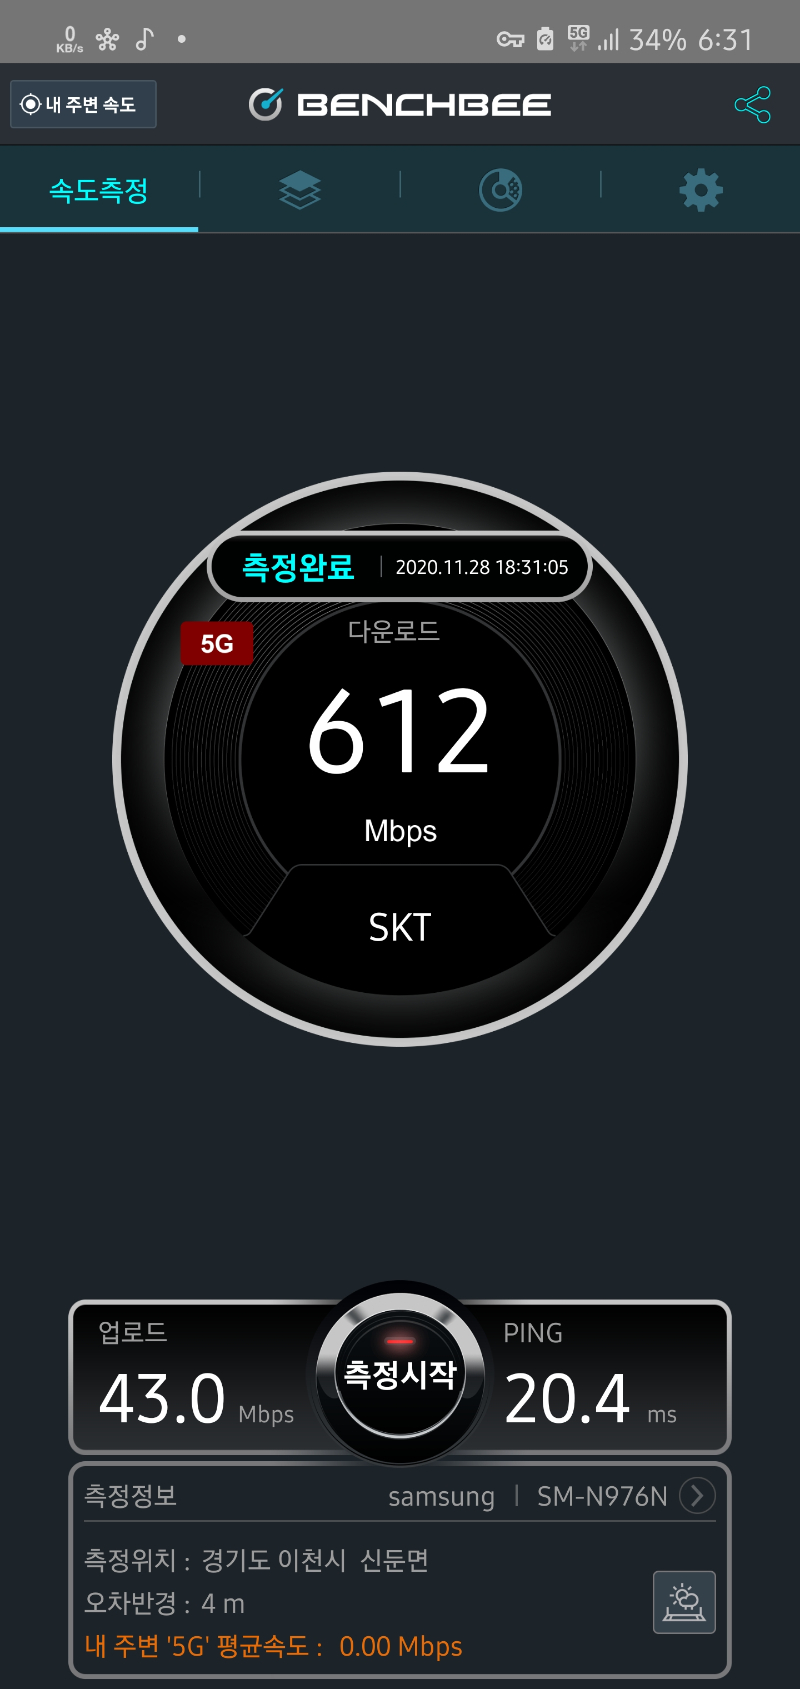 Screenshot_20201128-183113_BenchBee SpeedTest.jpg